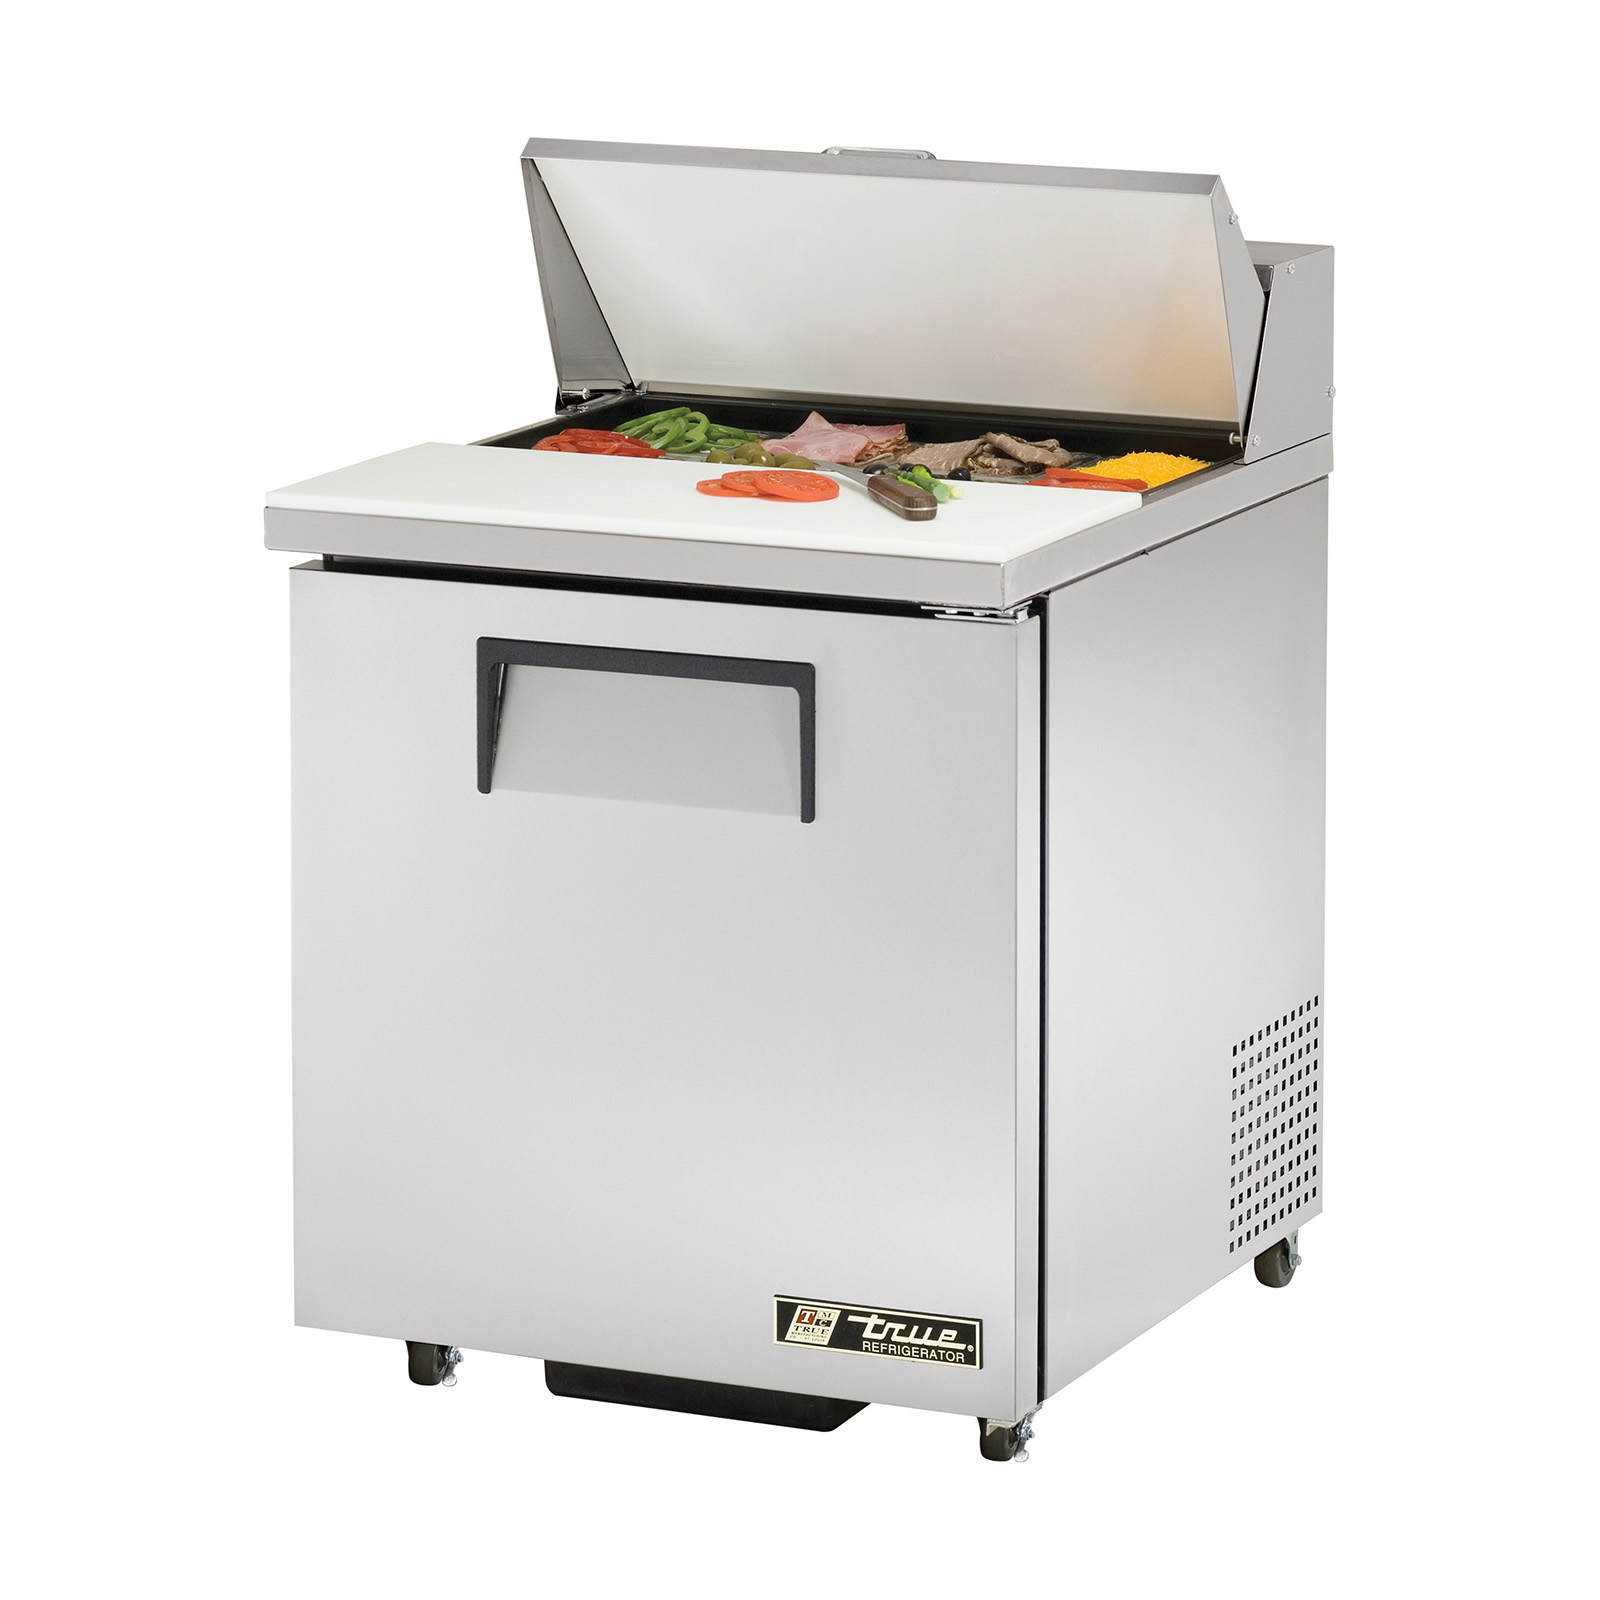 TSSU-27-08-ADA True - ADA Compliant Sandwich/Salad Unit (8) 1/6 size (4